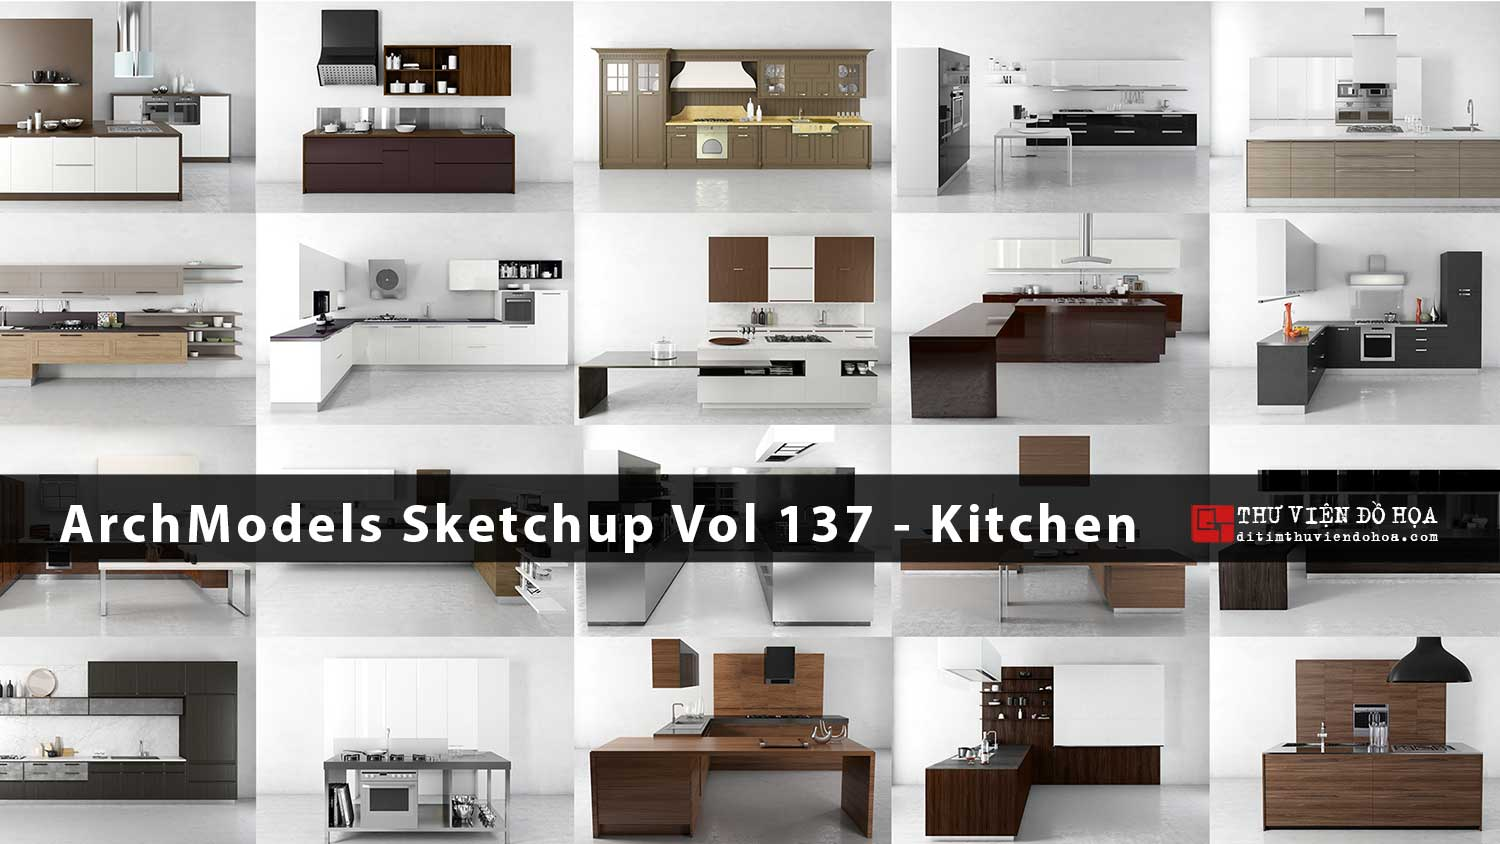 [ SketchUp Library ] Evermotion ArchModels Sketchup Vol 137 - Kitchen